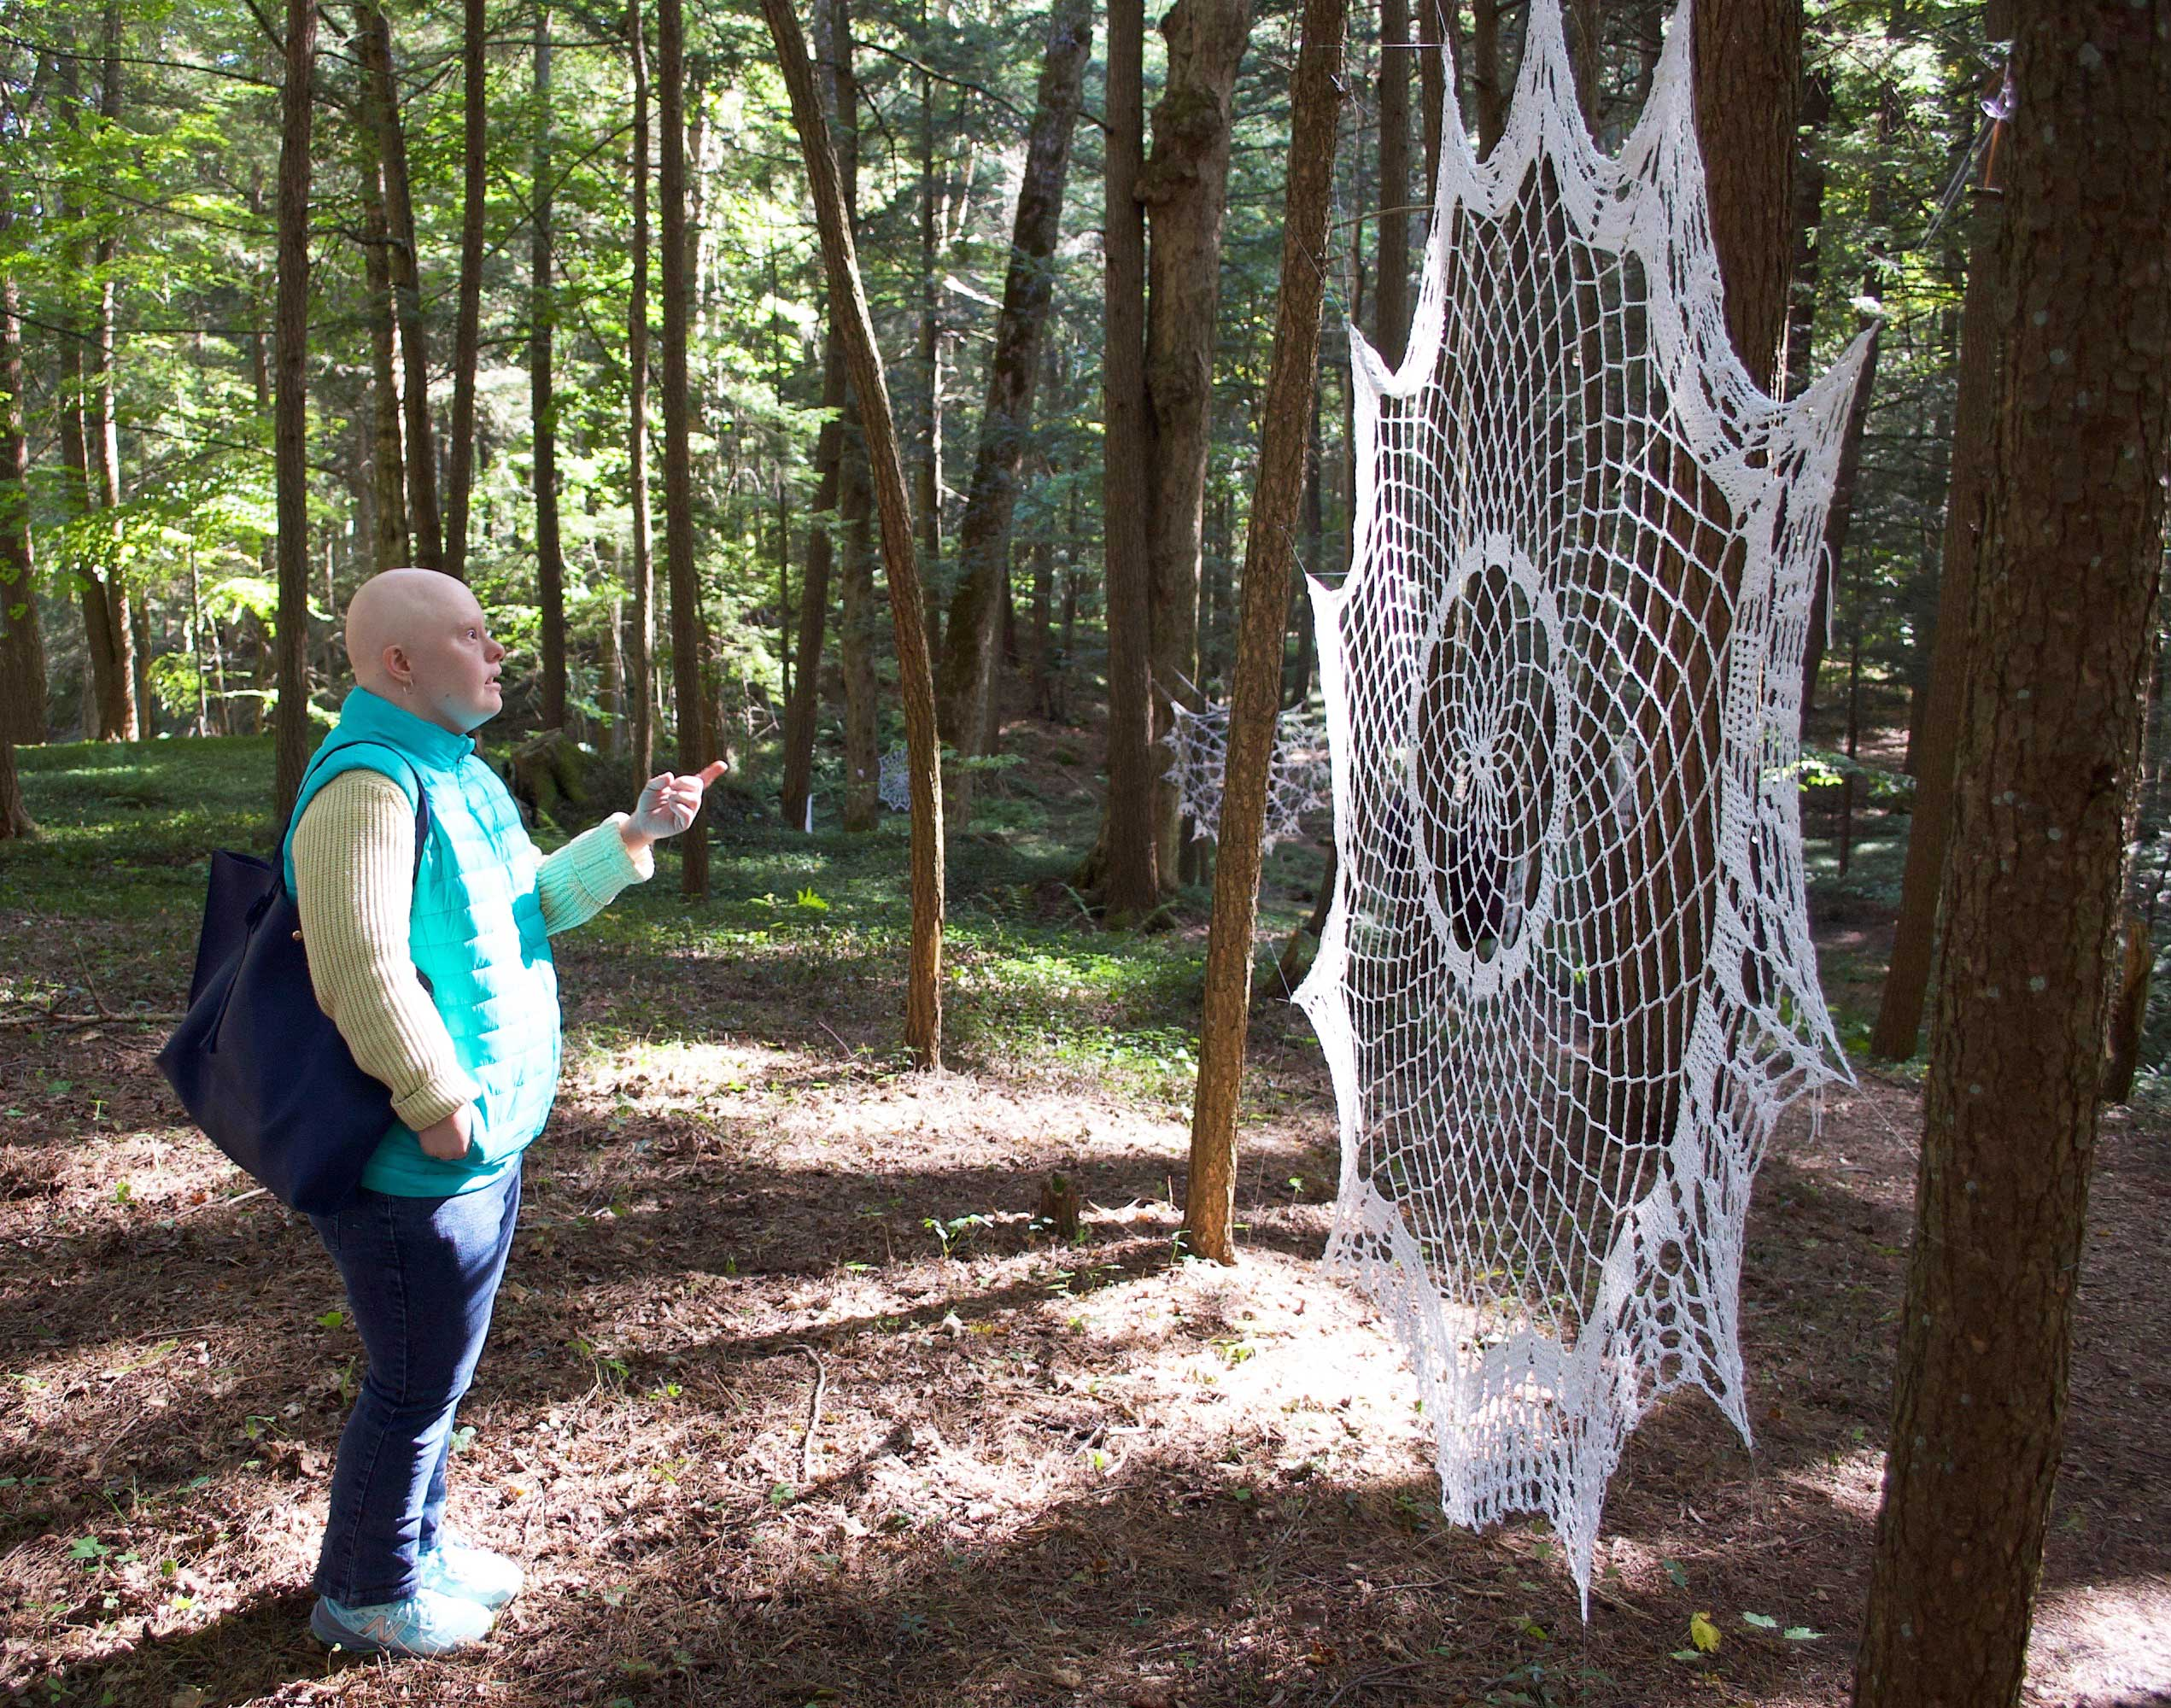 A woman stands outside, pointing to a large, knit, web-like net that is strung in front of her between two trees.